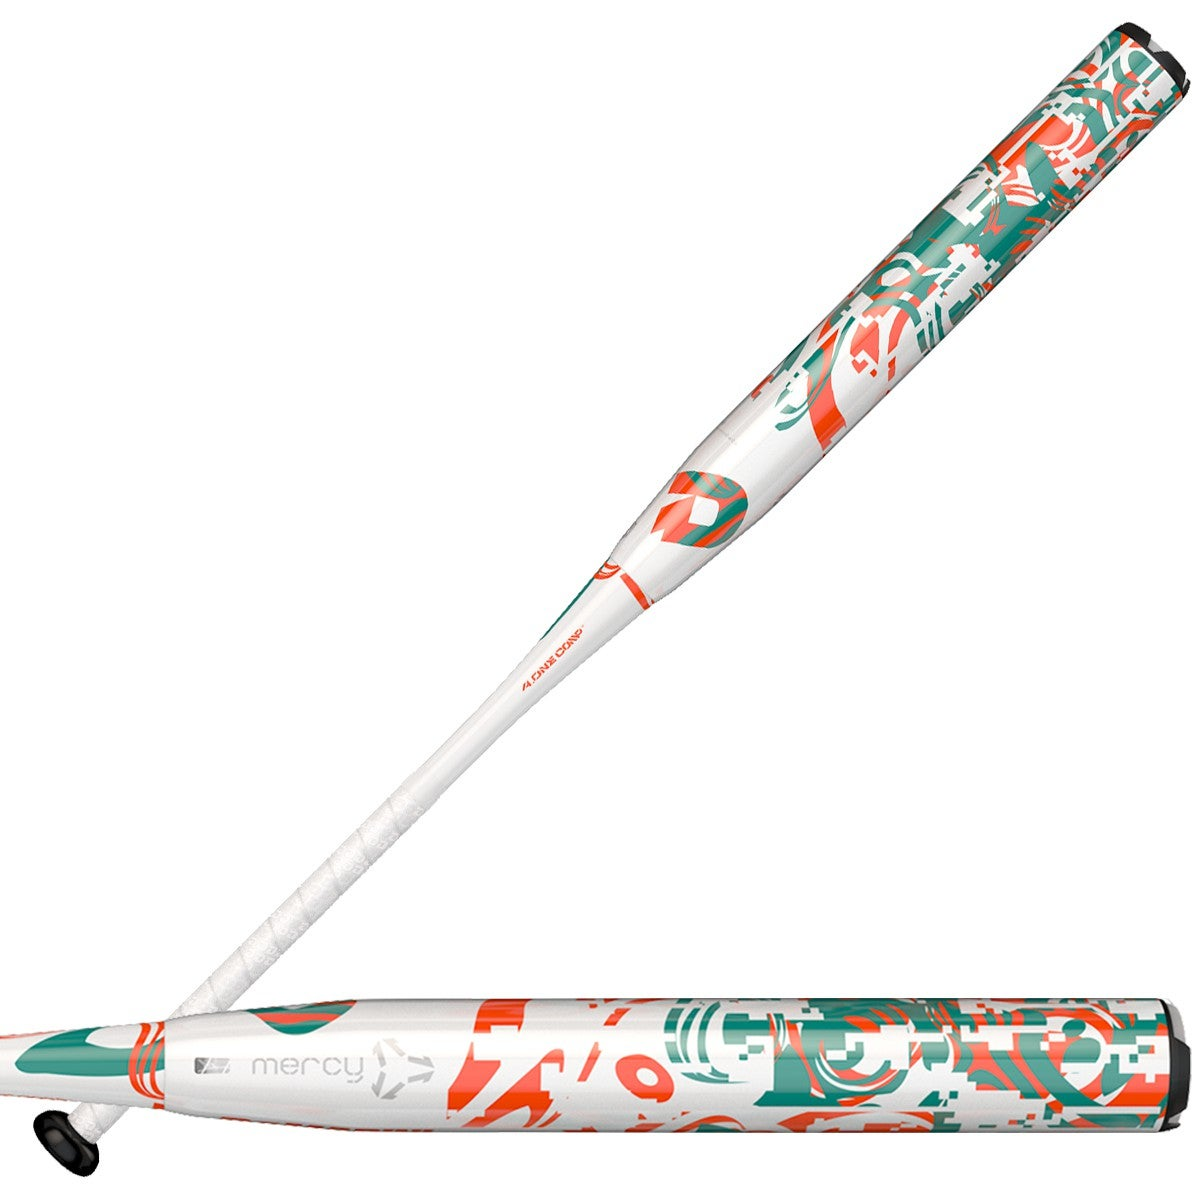 How To Choose A Slowpitch Bat Demarini